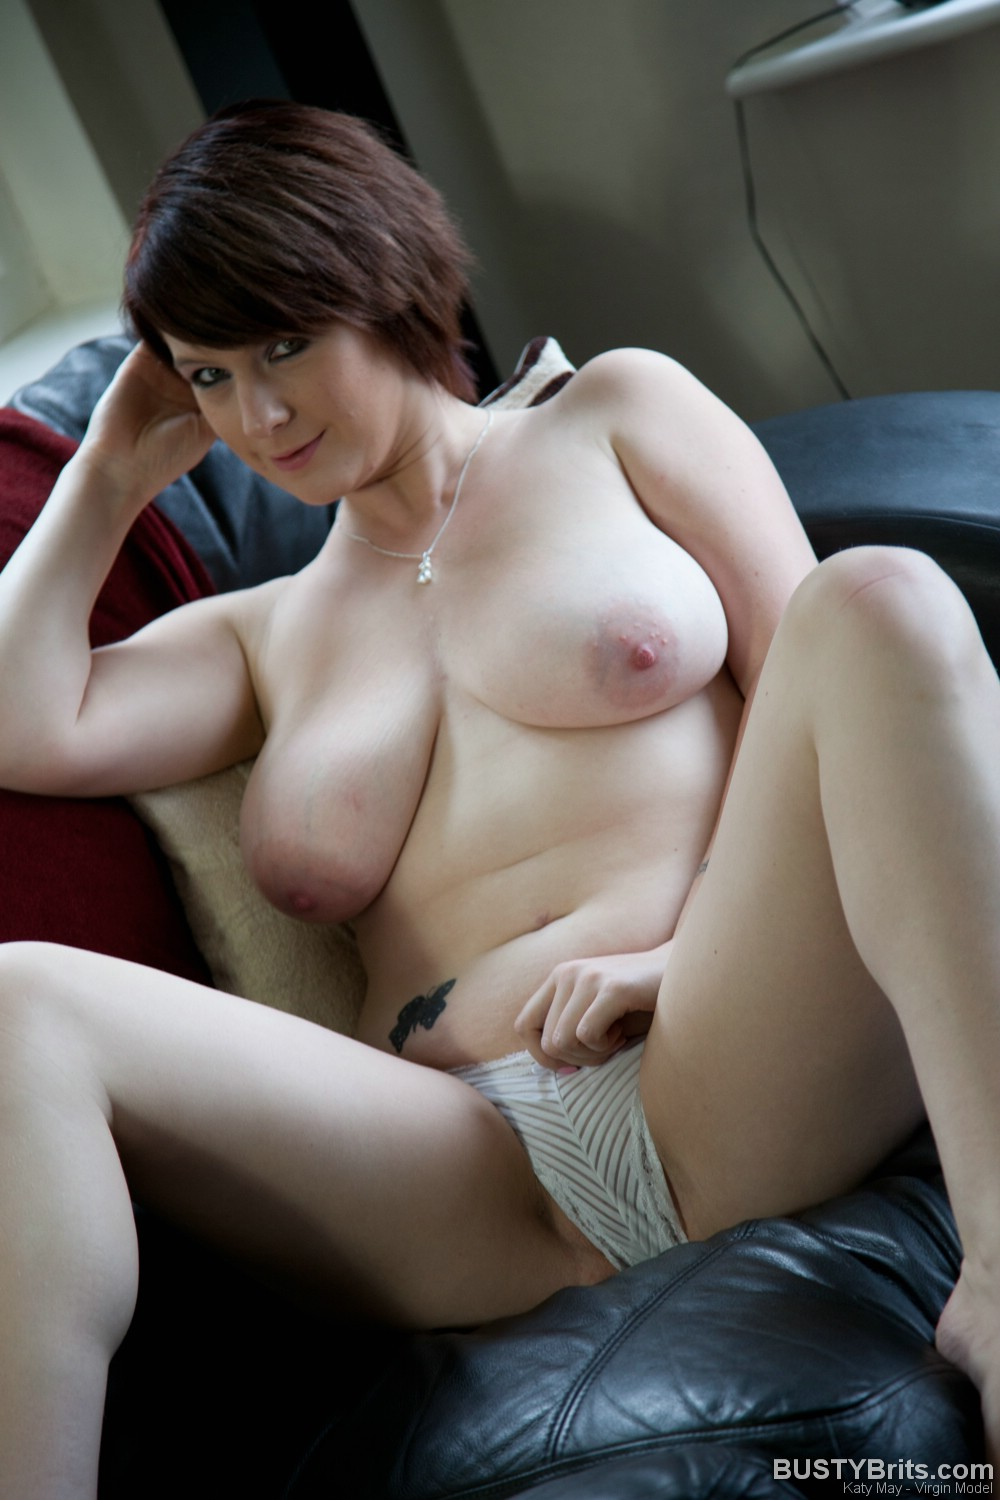 Hot and busty brit katie second